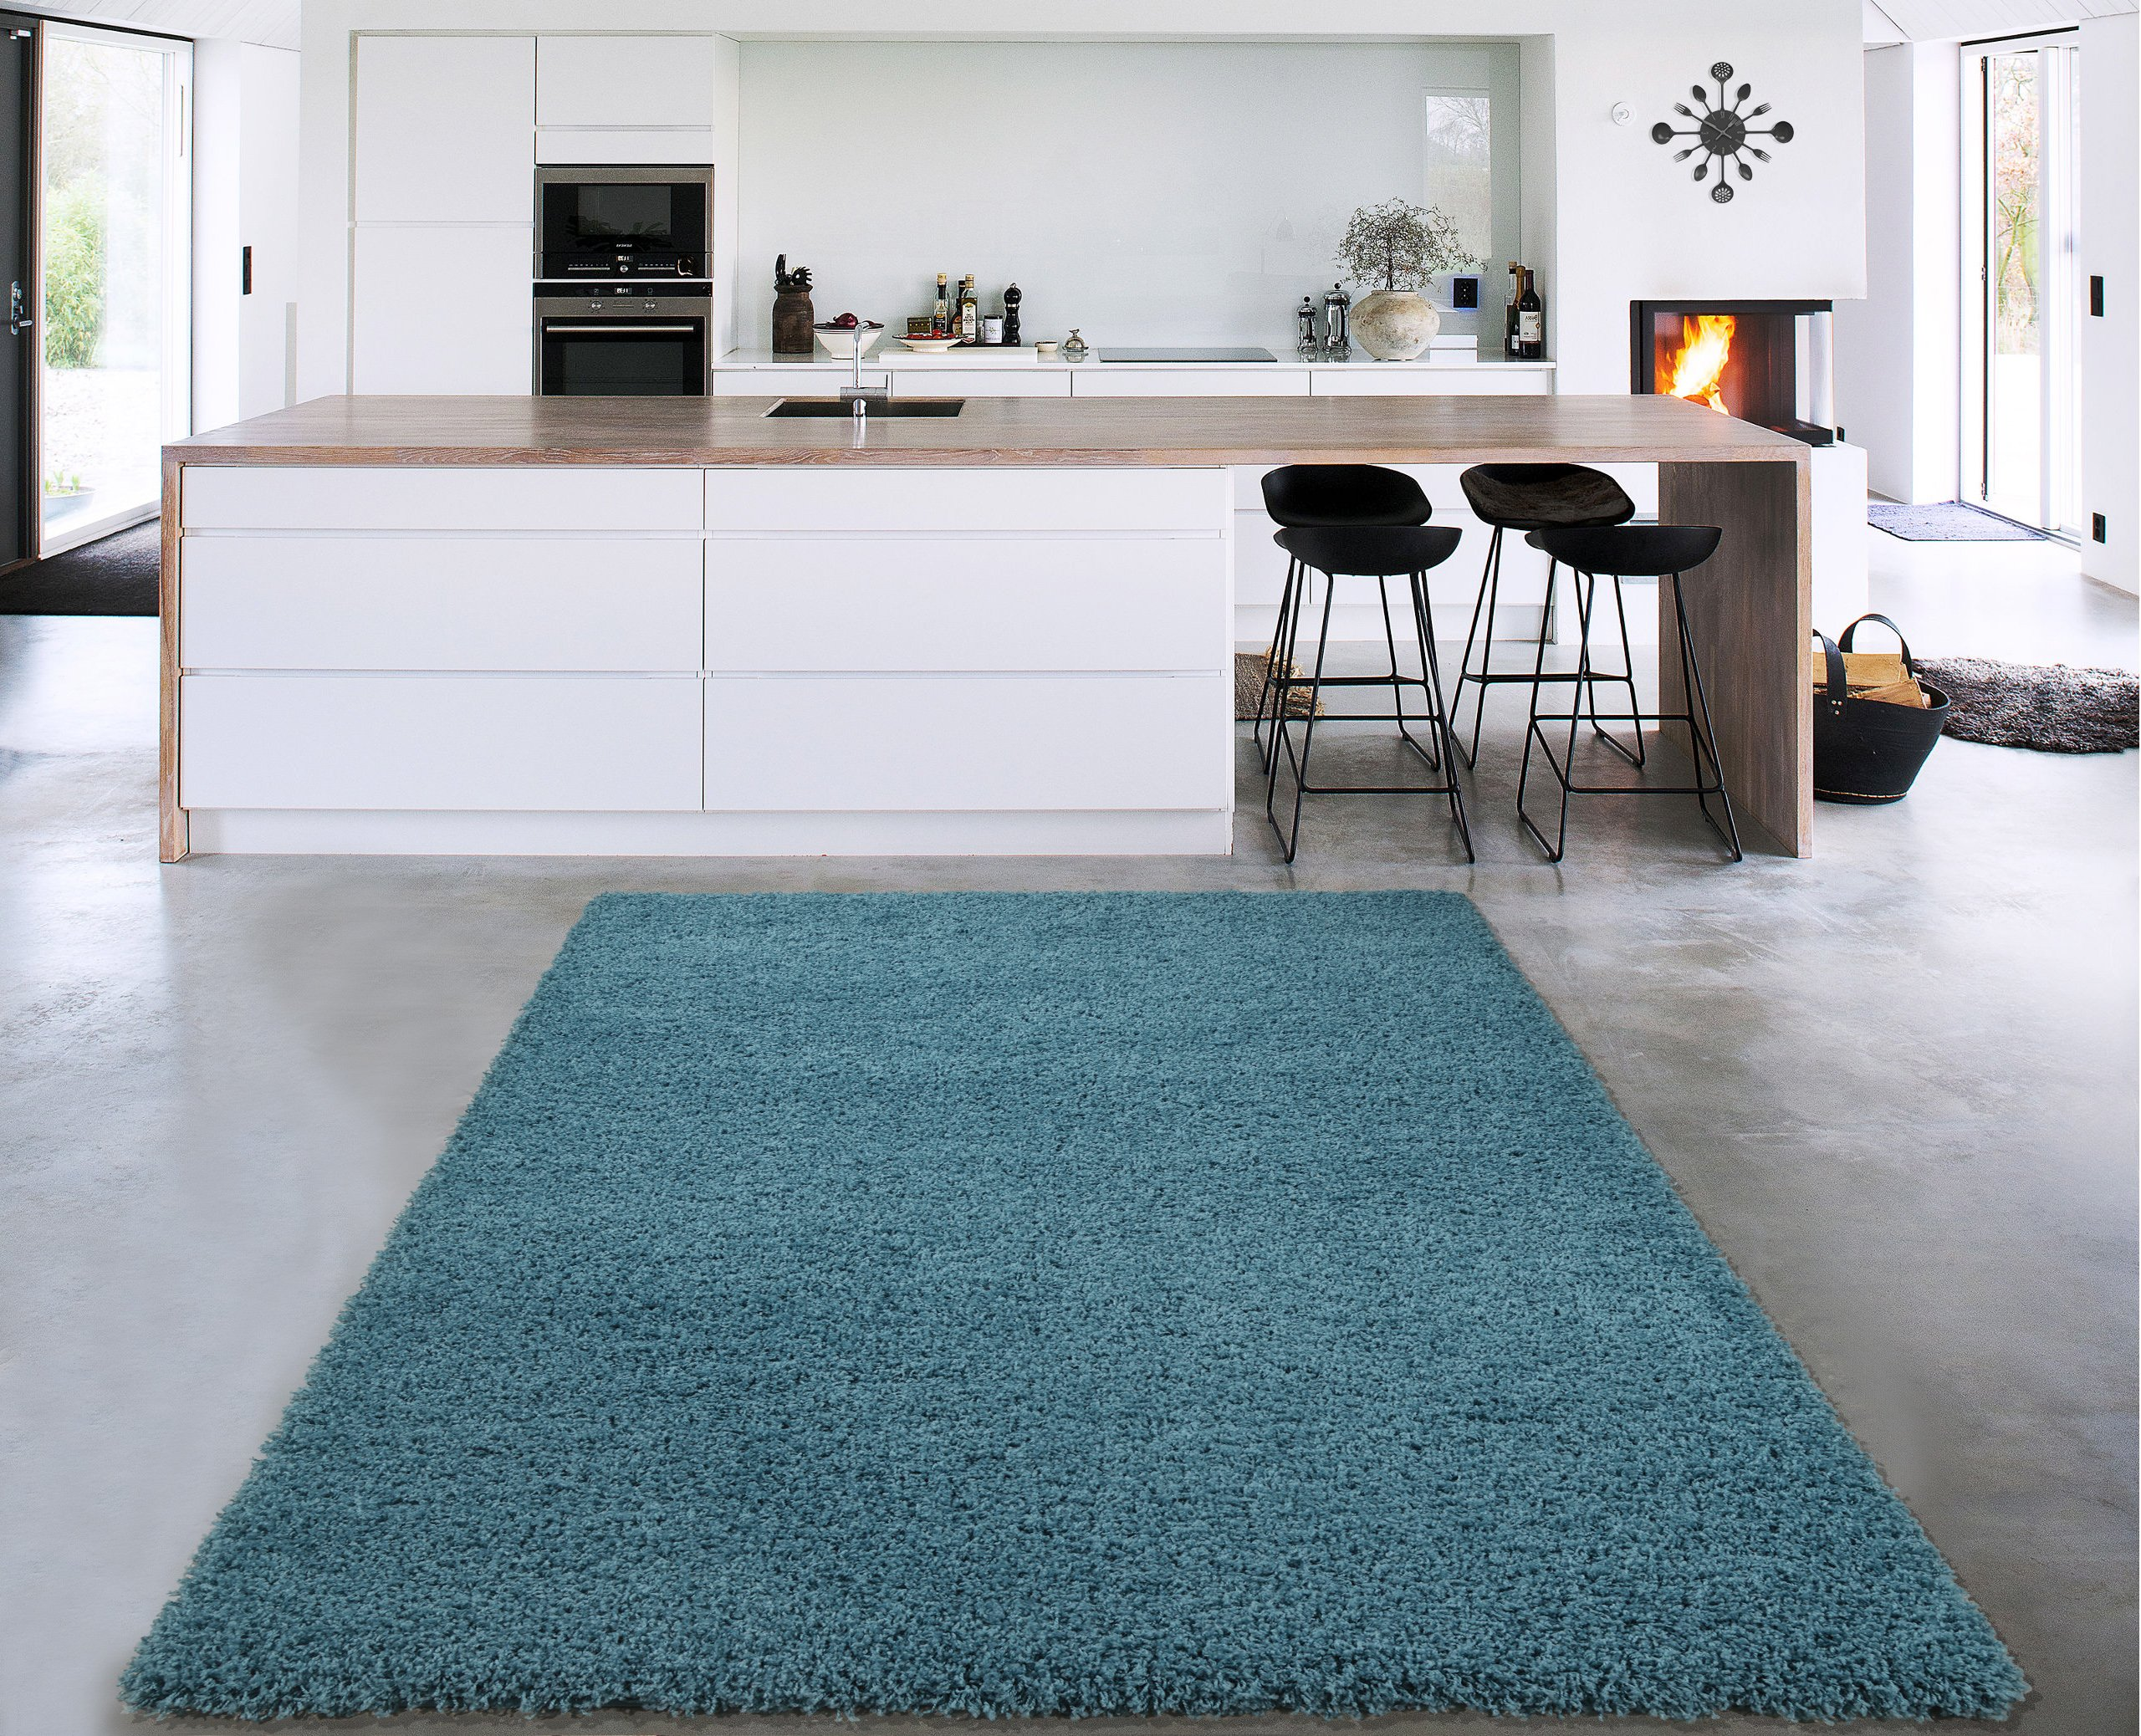 Sweet Home Stores Cozy Shag Collection Solid Shag Rug Contemporary Living & Bedroom Soft Shaggy Area Rug, 79'' L x 111'' W,  Turquoise Blue by Sweet Home Stores